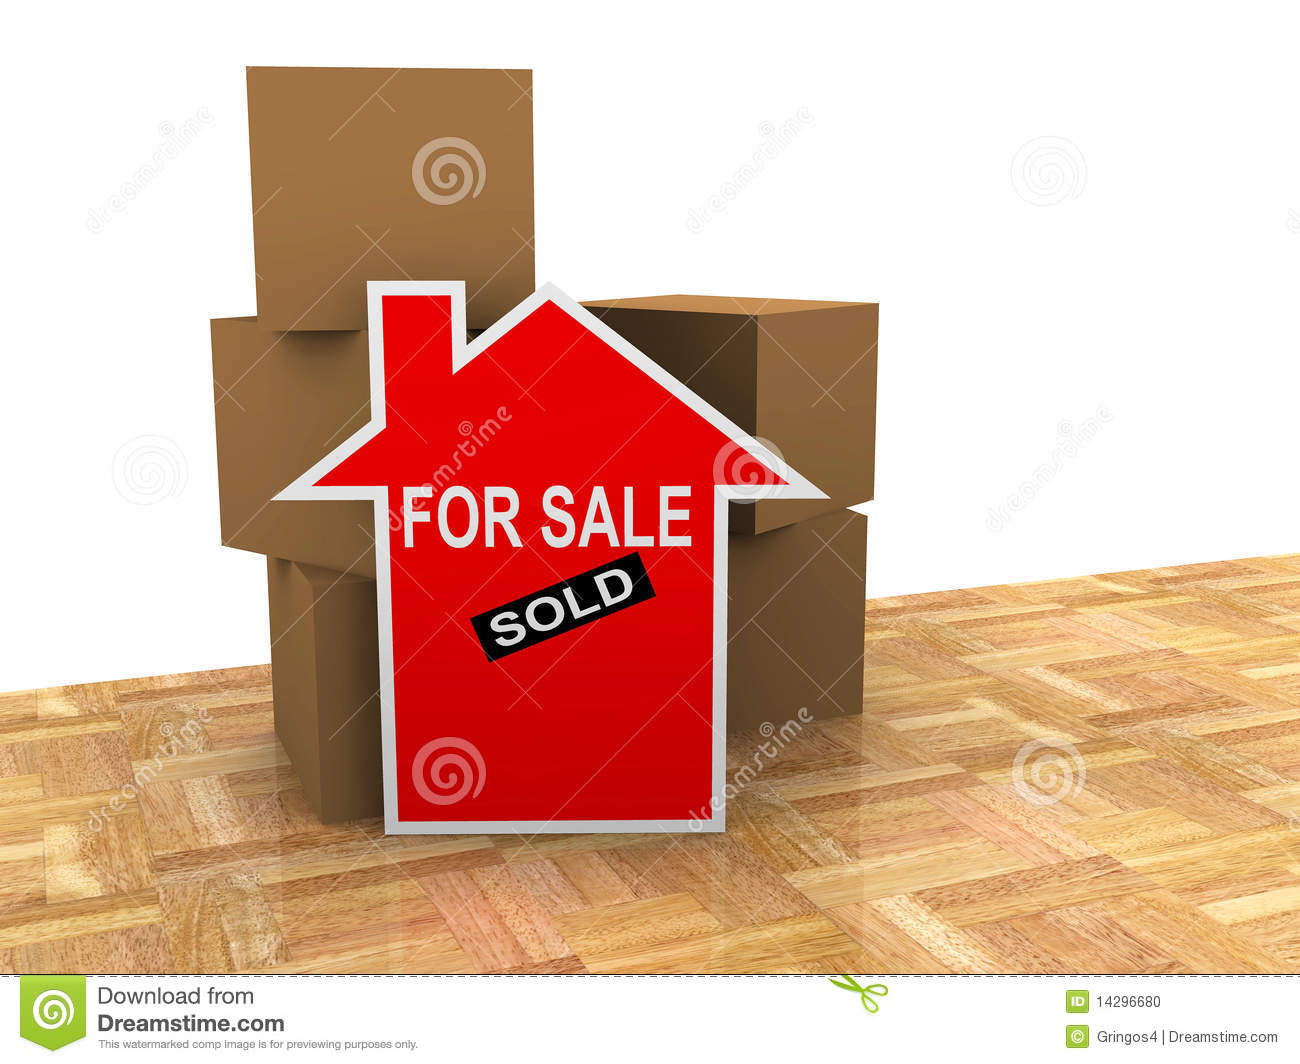 For Sale Sold Sign: House For Sale Sold Sign Stock Photo